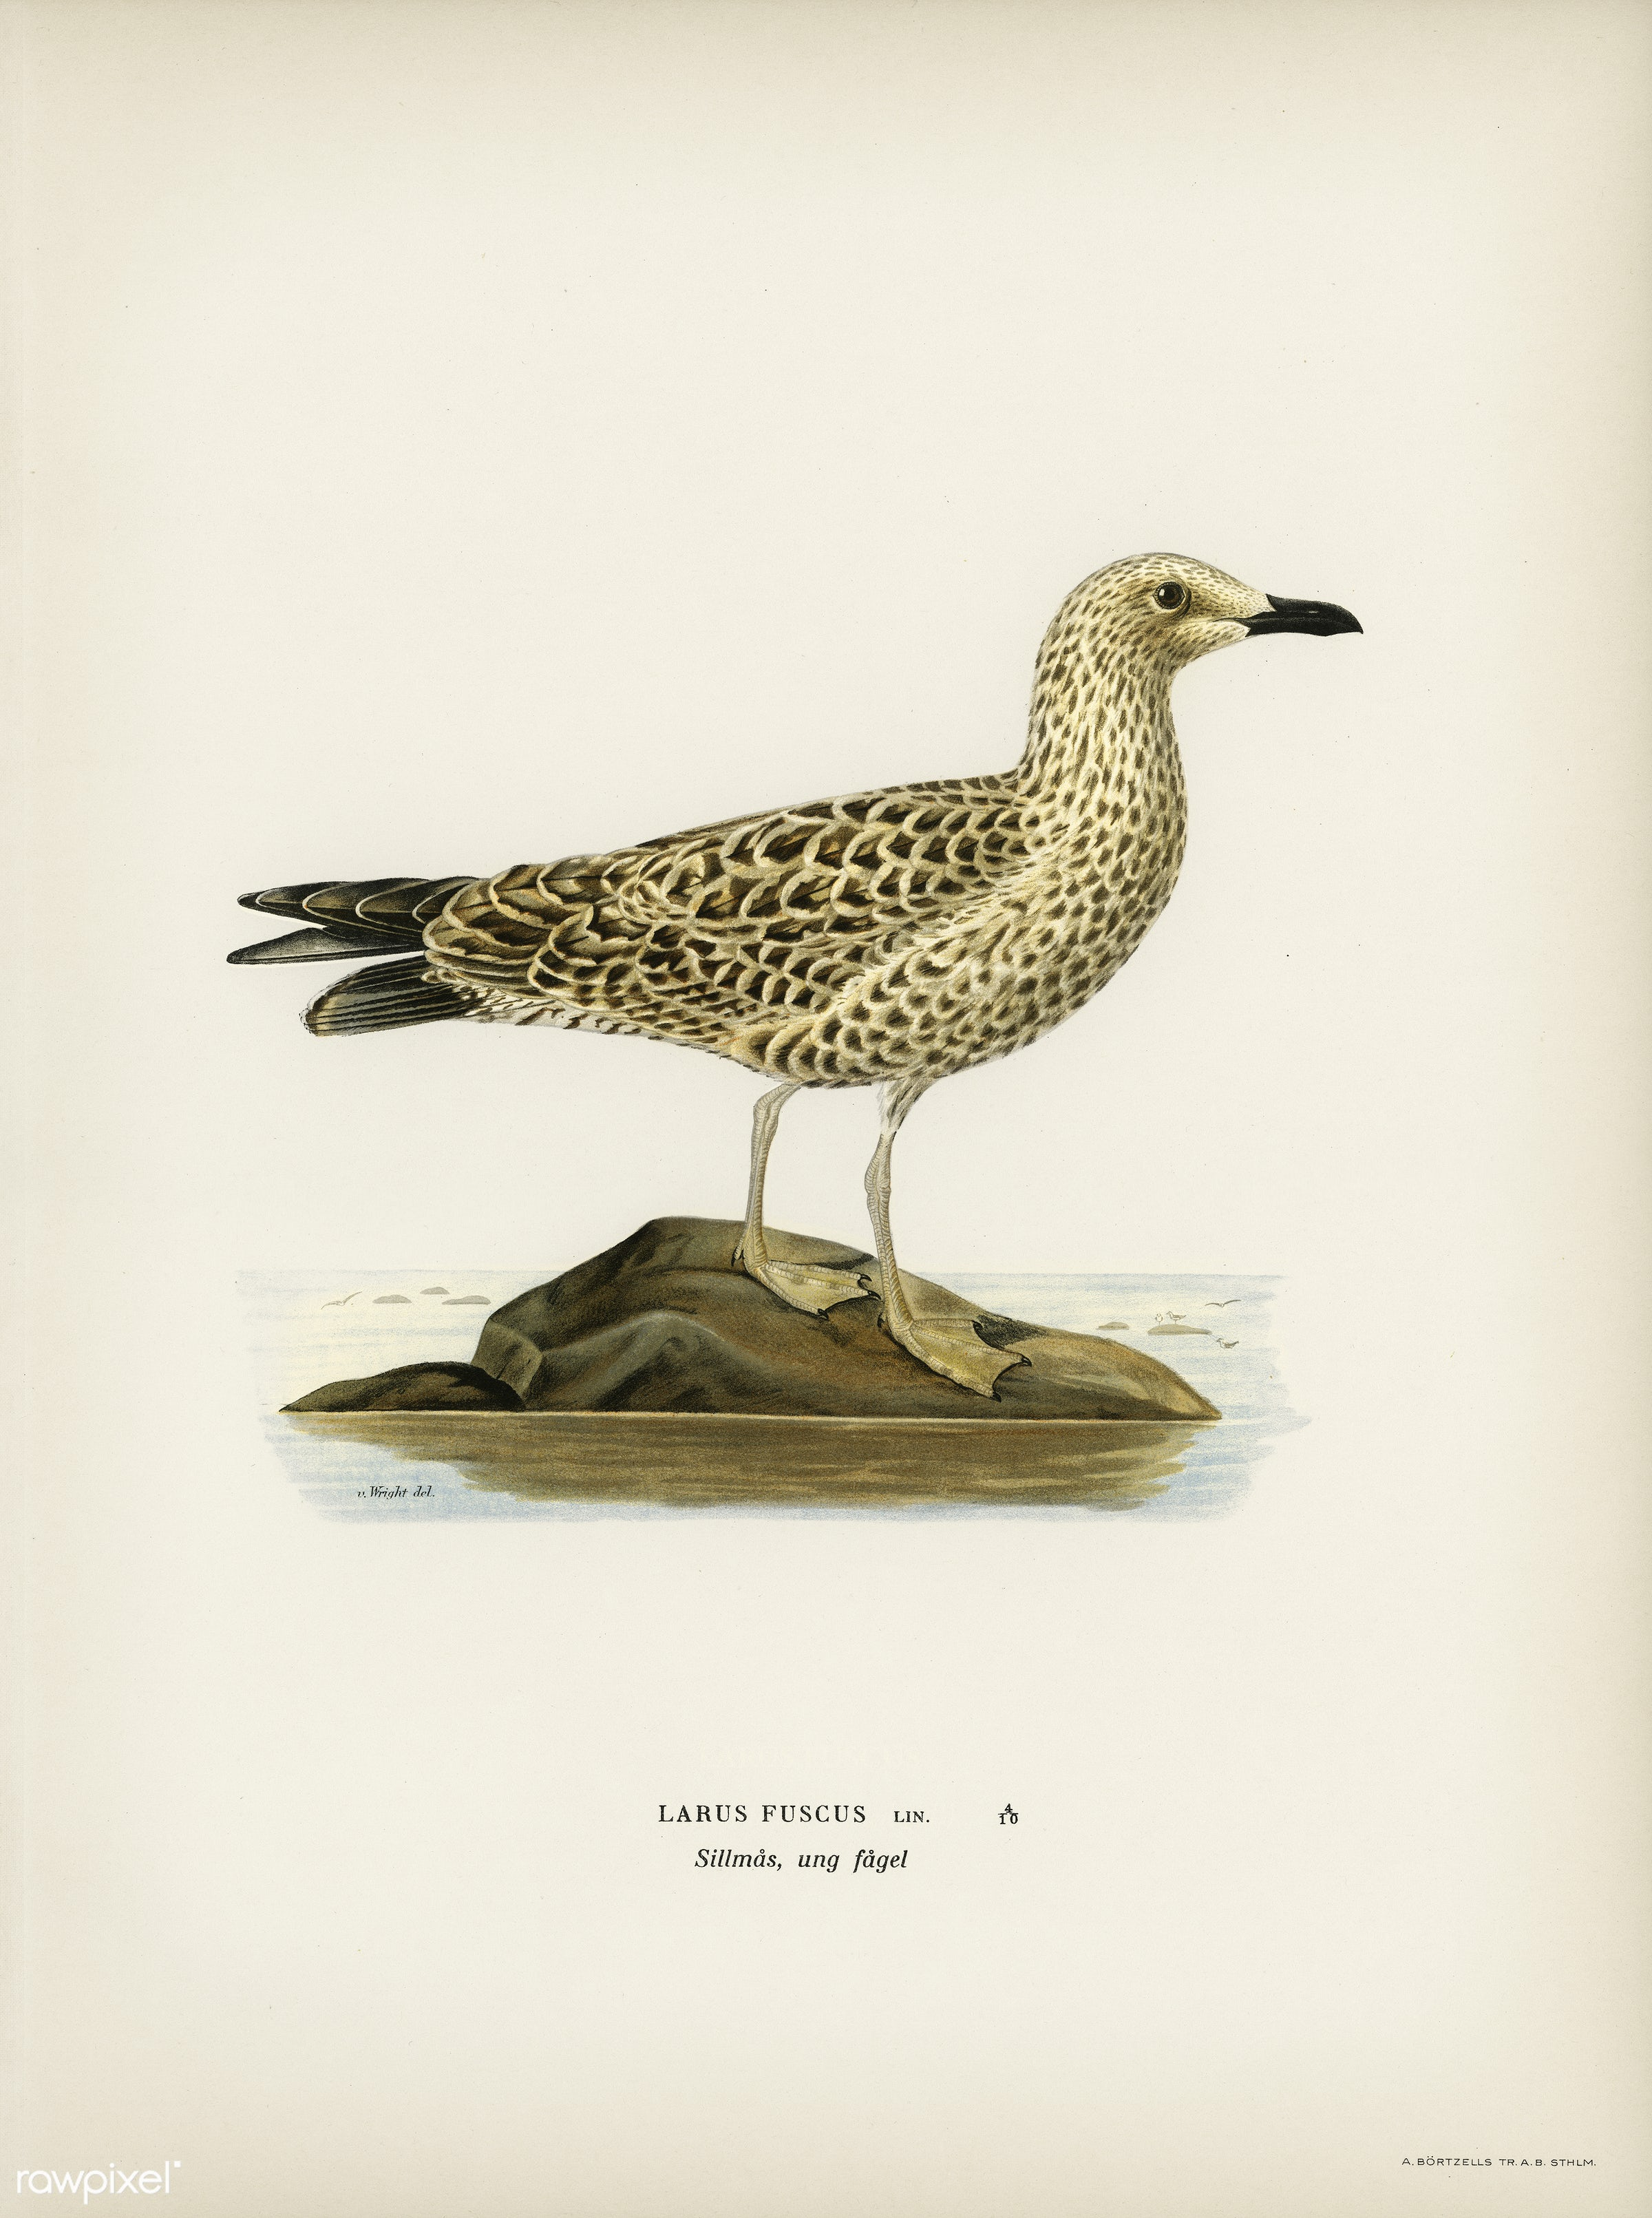 Leser black-backed gull (Larus fuscus) illustrated by the von Wright brothers. Digitally enhanced from our own 1929 folio...